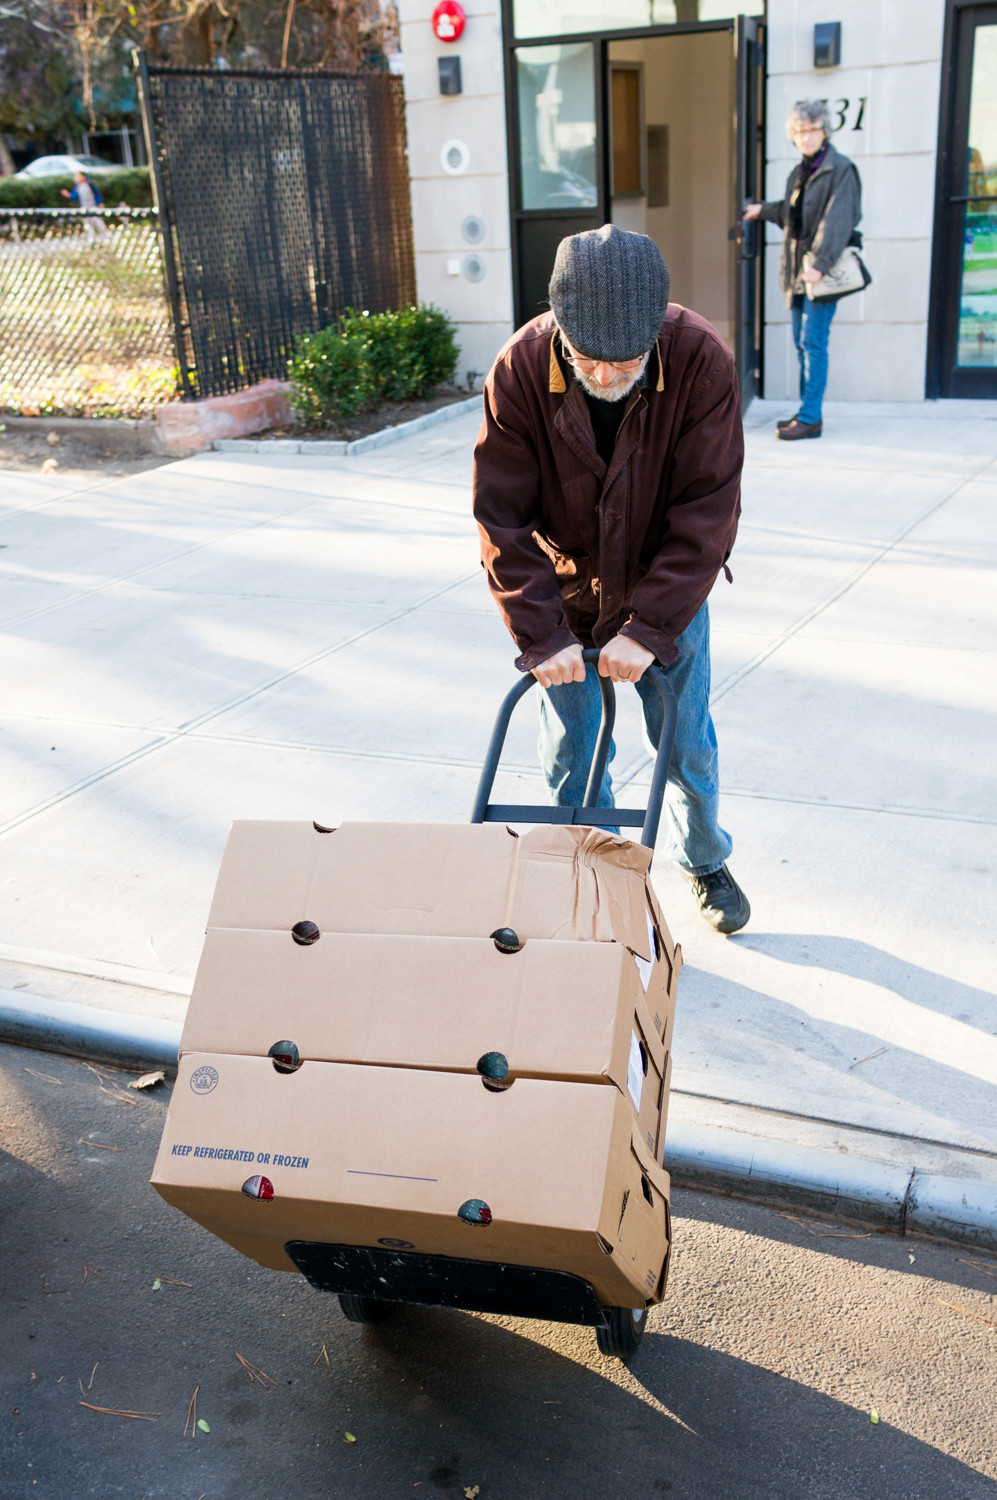 Ivan Braun, a member of Welcoming Neighbors Northwest Bronx, heaves a hand truck stacked with turkeys onto the sidewalk. The group raised nearly $2,500 to purchase Thanksgiving meals for families living in the transitional housing facility at 5731 Broadway.